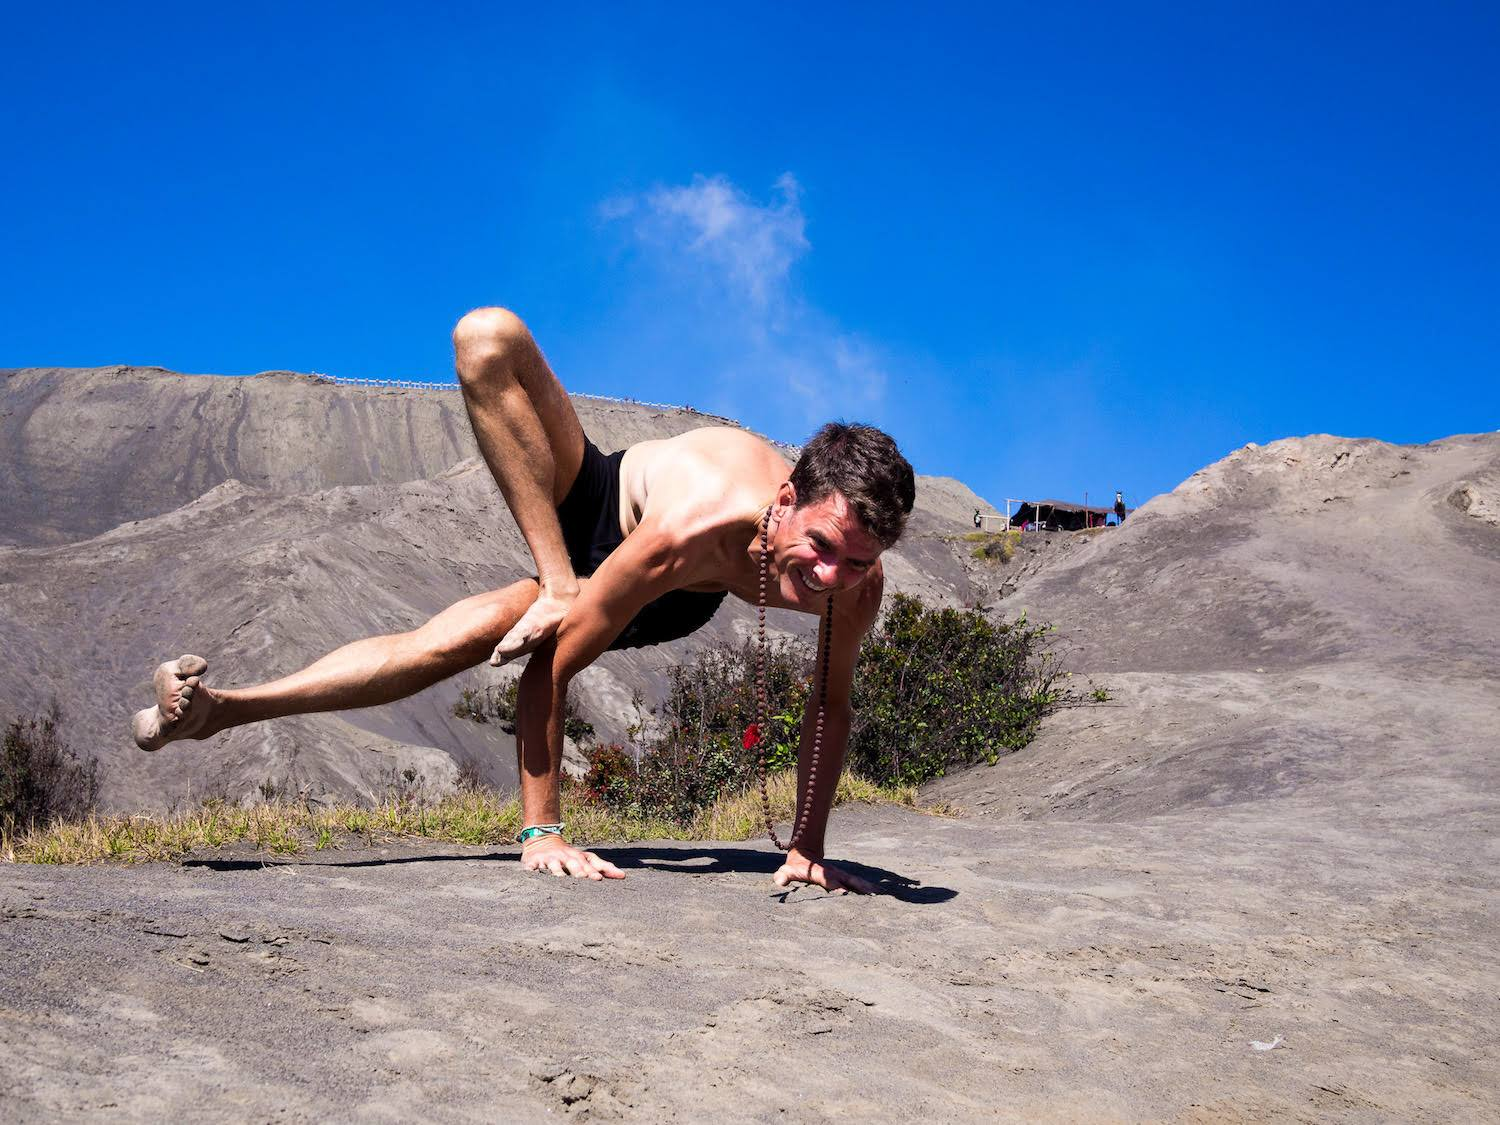 Stephen doing a little outdoor yoga at Mount Bromo, Indonesia.